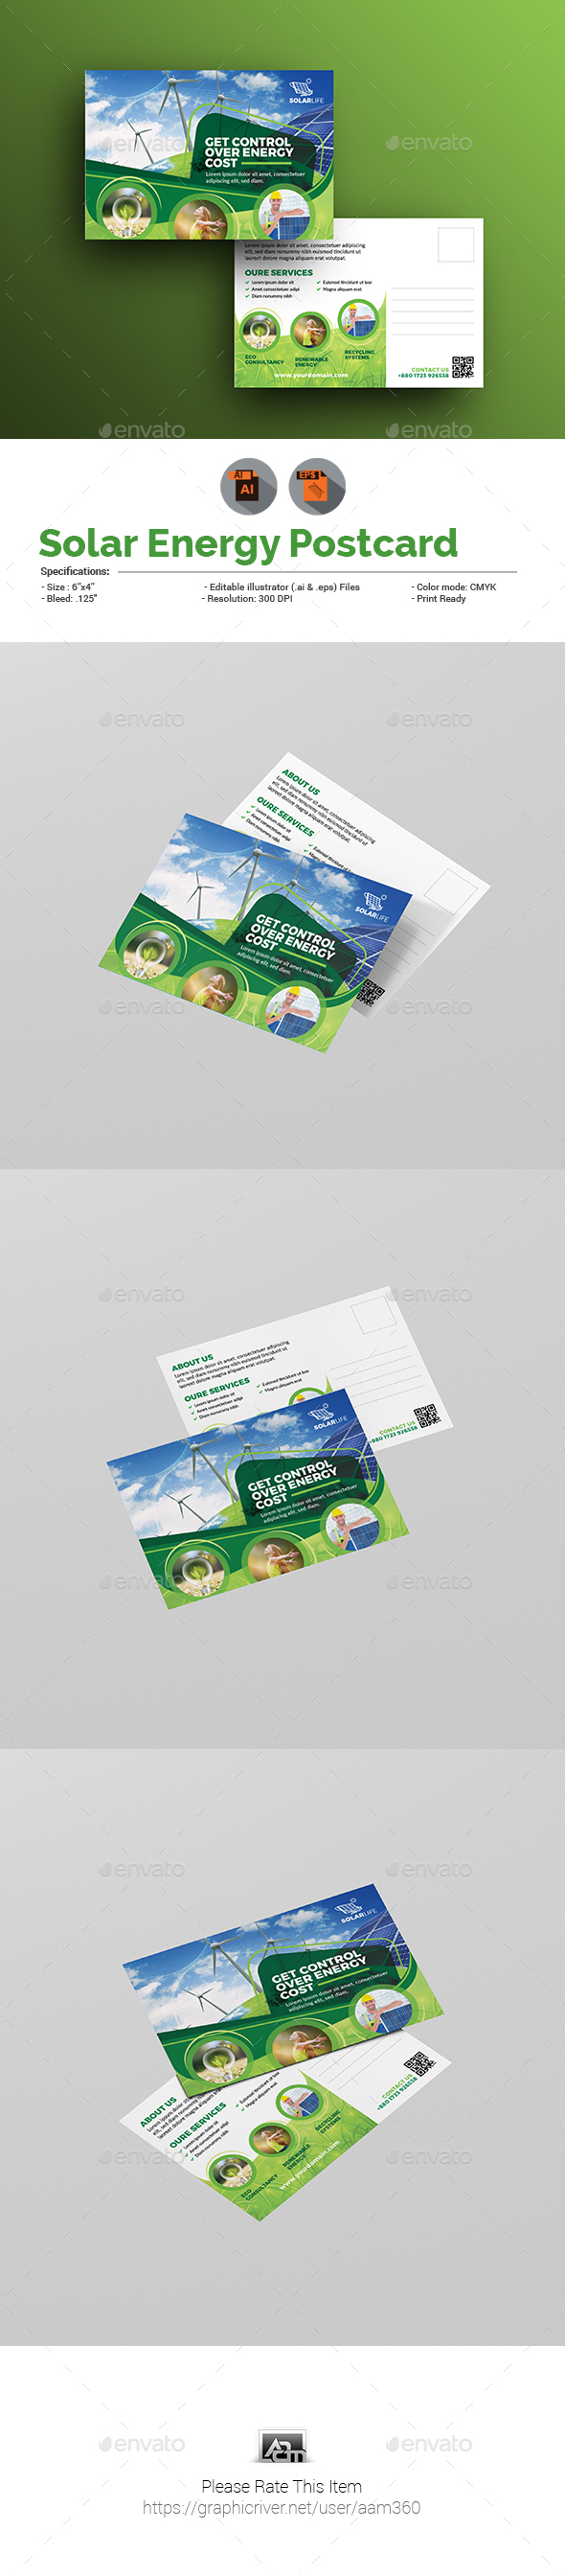 Solar Energy Postcard Template - Cards & Invites Print Templates